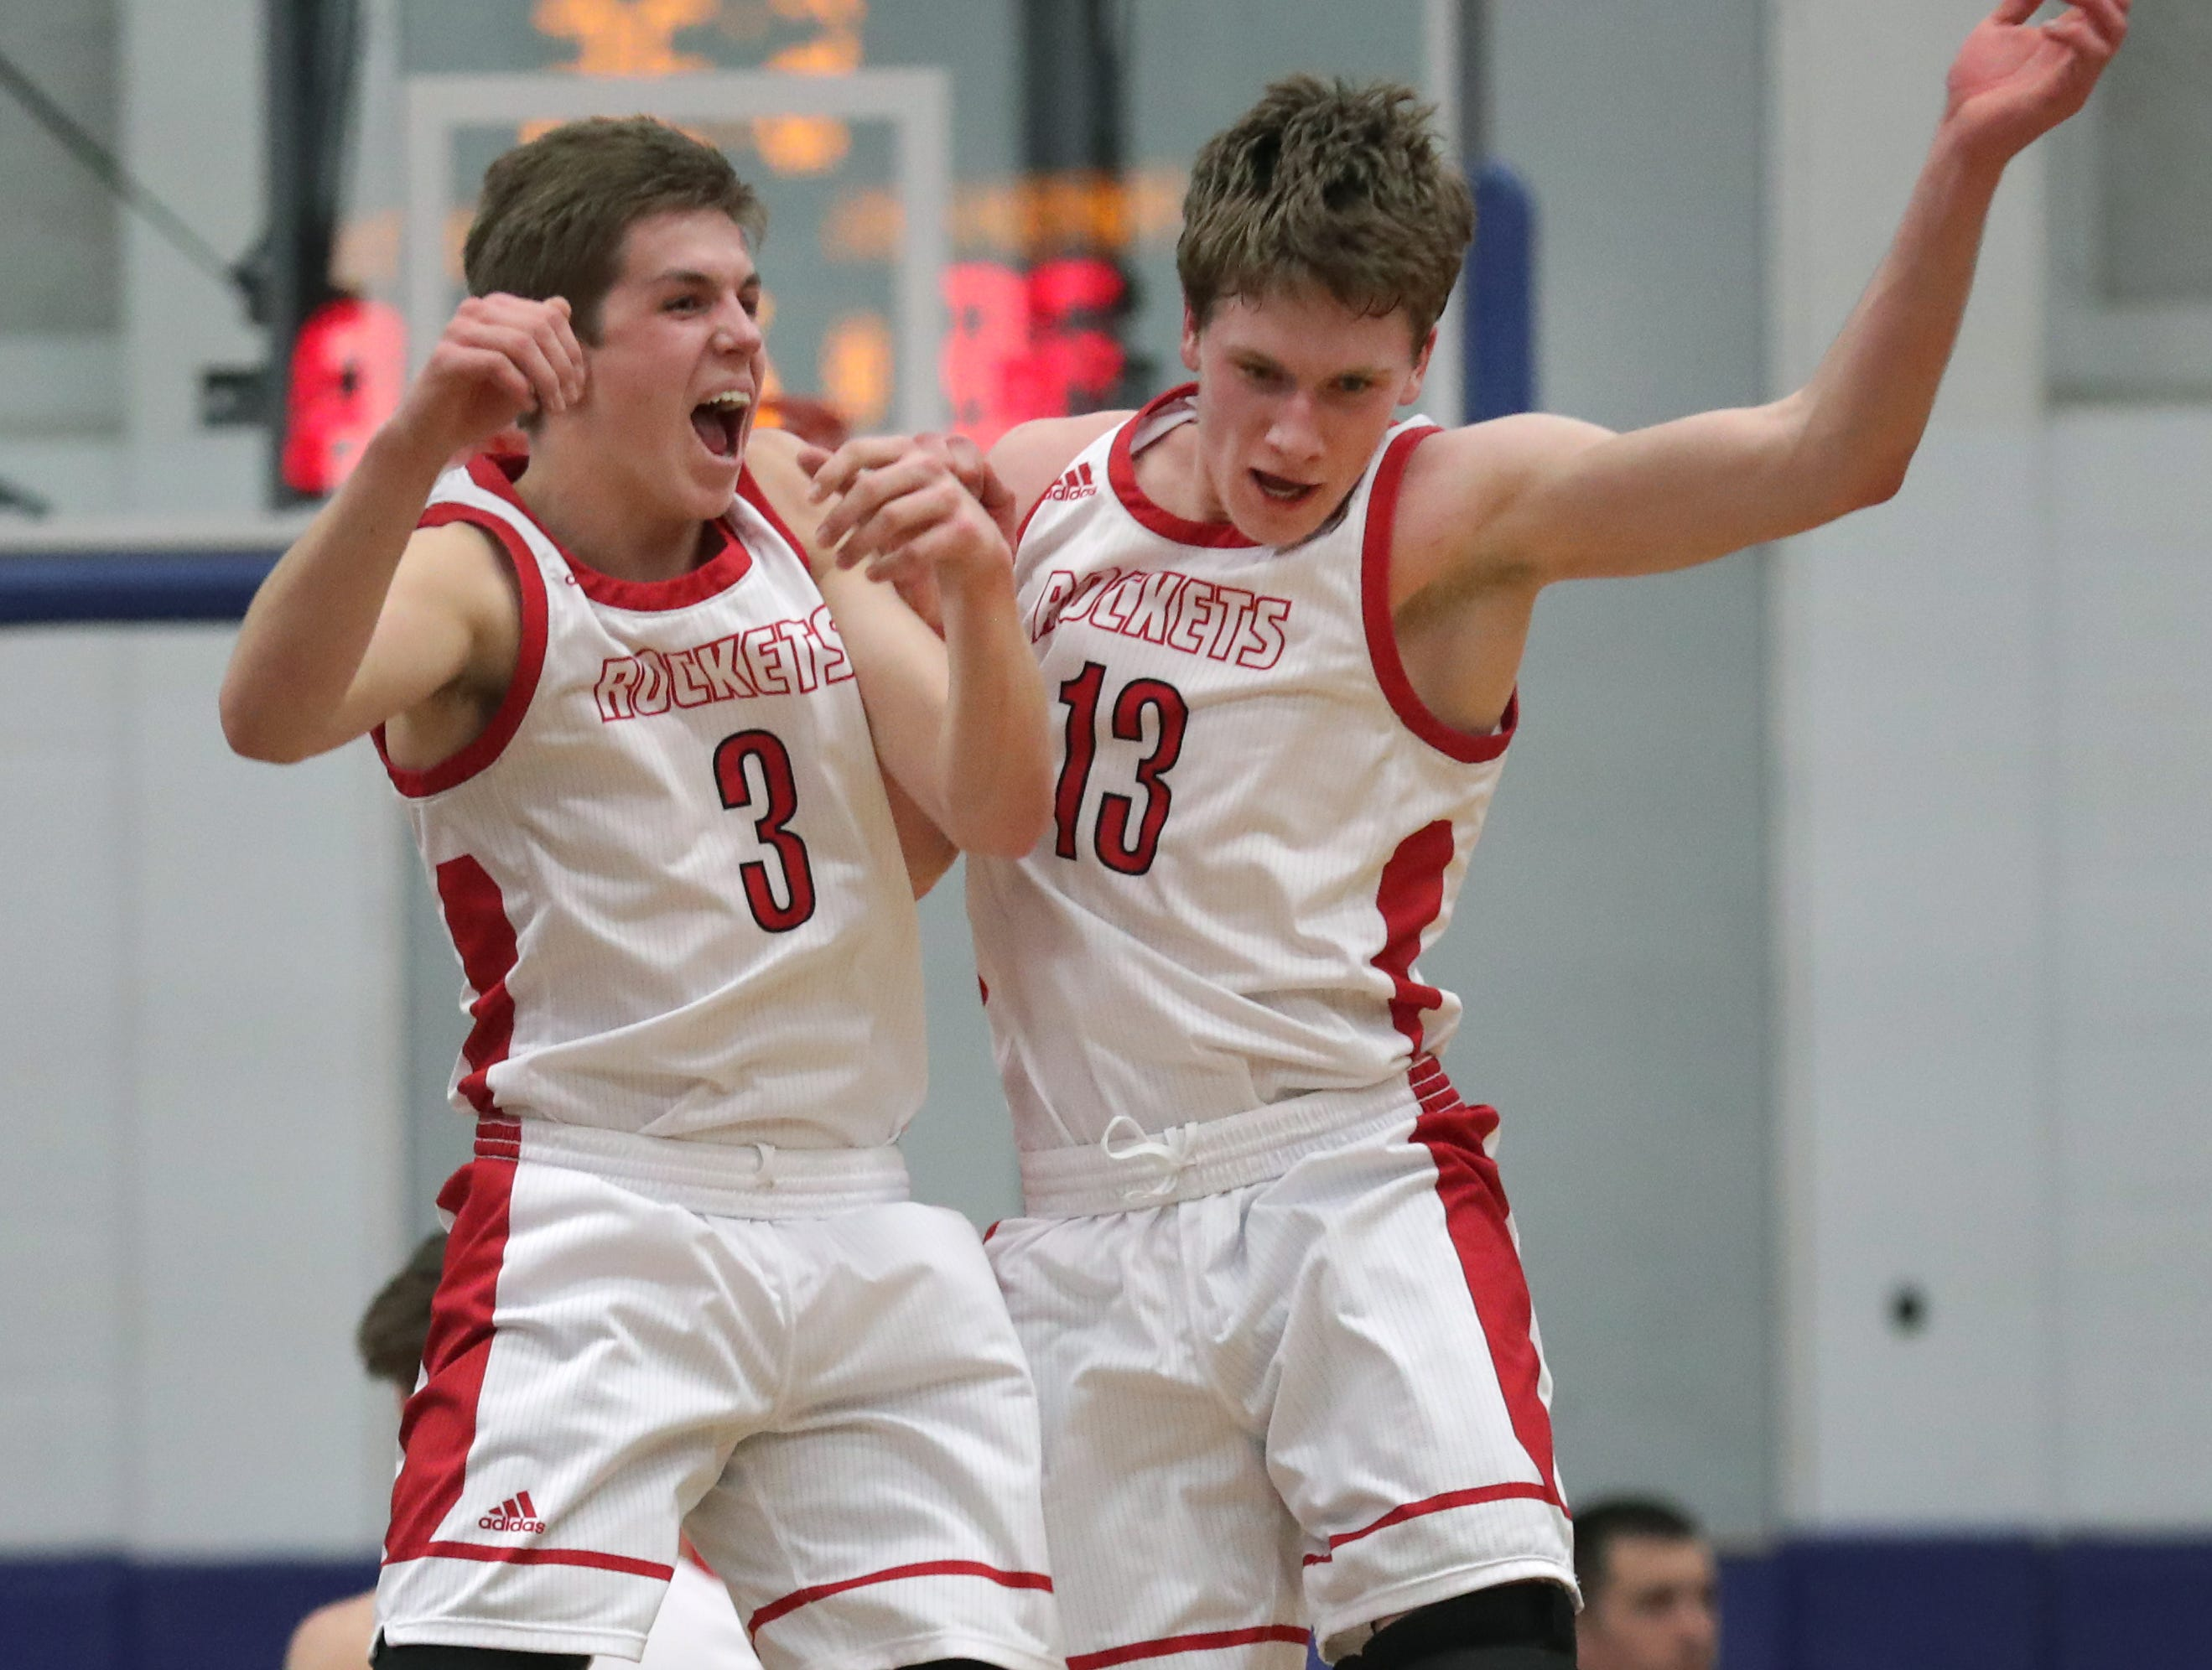 Neenah High School's #3 Sam Dietrich and #13 Ethan Parker against Kimberly High School during their WIAA Division 1 boys basketball sectional semi-final on Thursday, March 7, 2019, at Oshkosh West High School in Oshkosh, Wis. Neenah defeated Kimberly 57 to 56.Wm. Glasheen/USA TODAY NETWORK-Wisconsin.